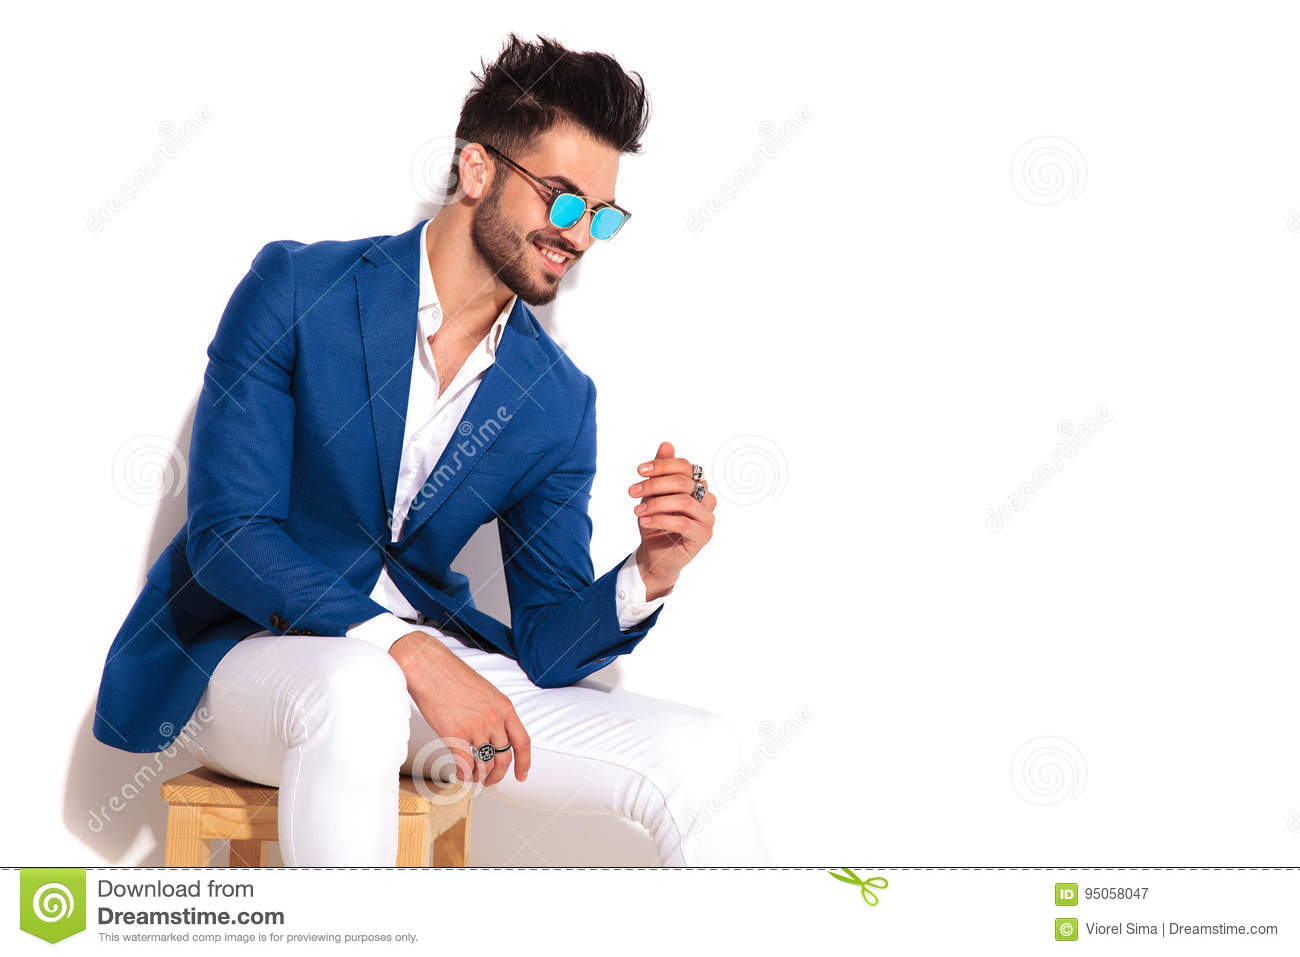 Man sitting in chair side - Background Chair Elegant Laughing Man Side Sitting